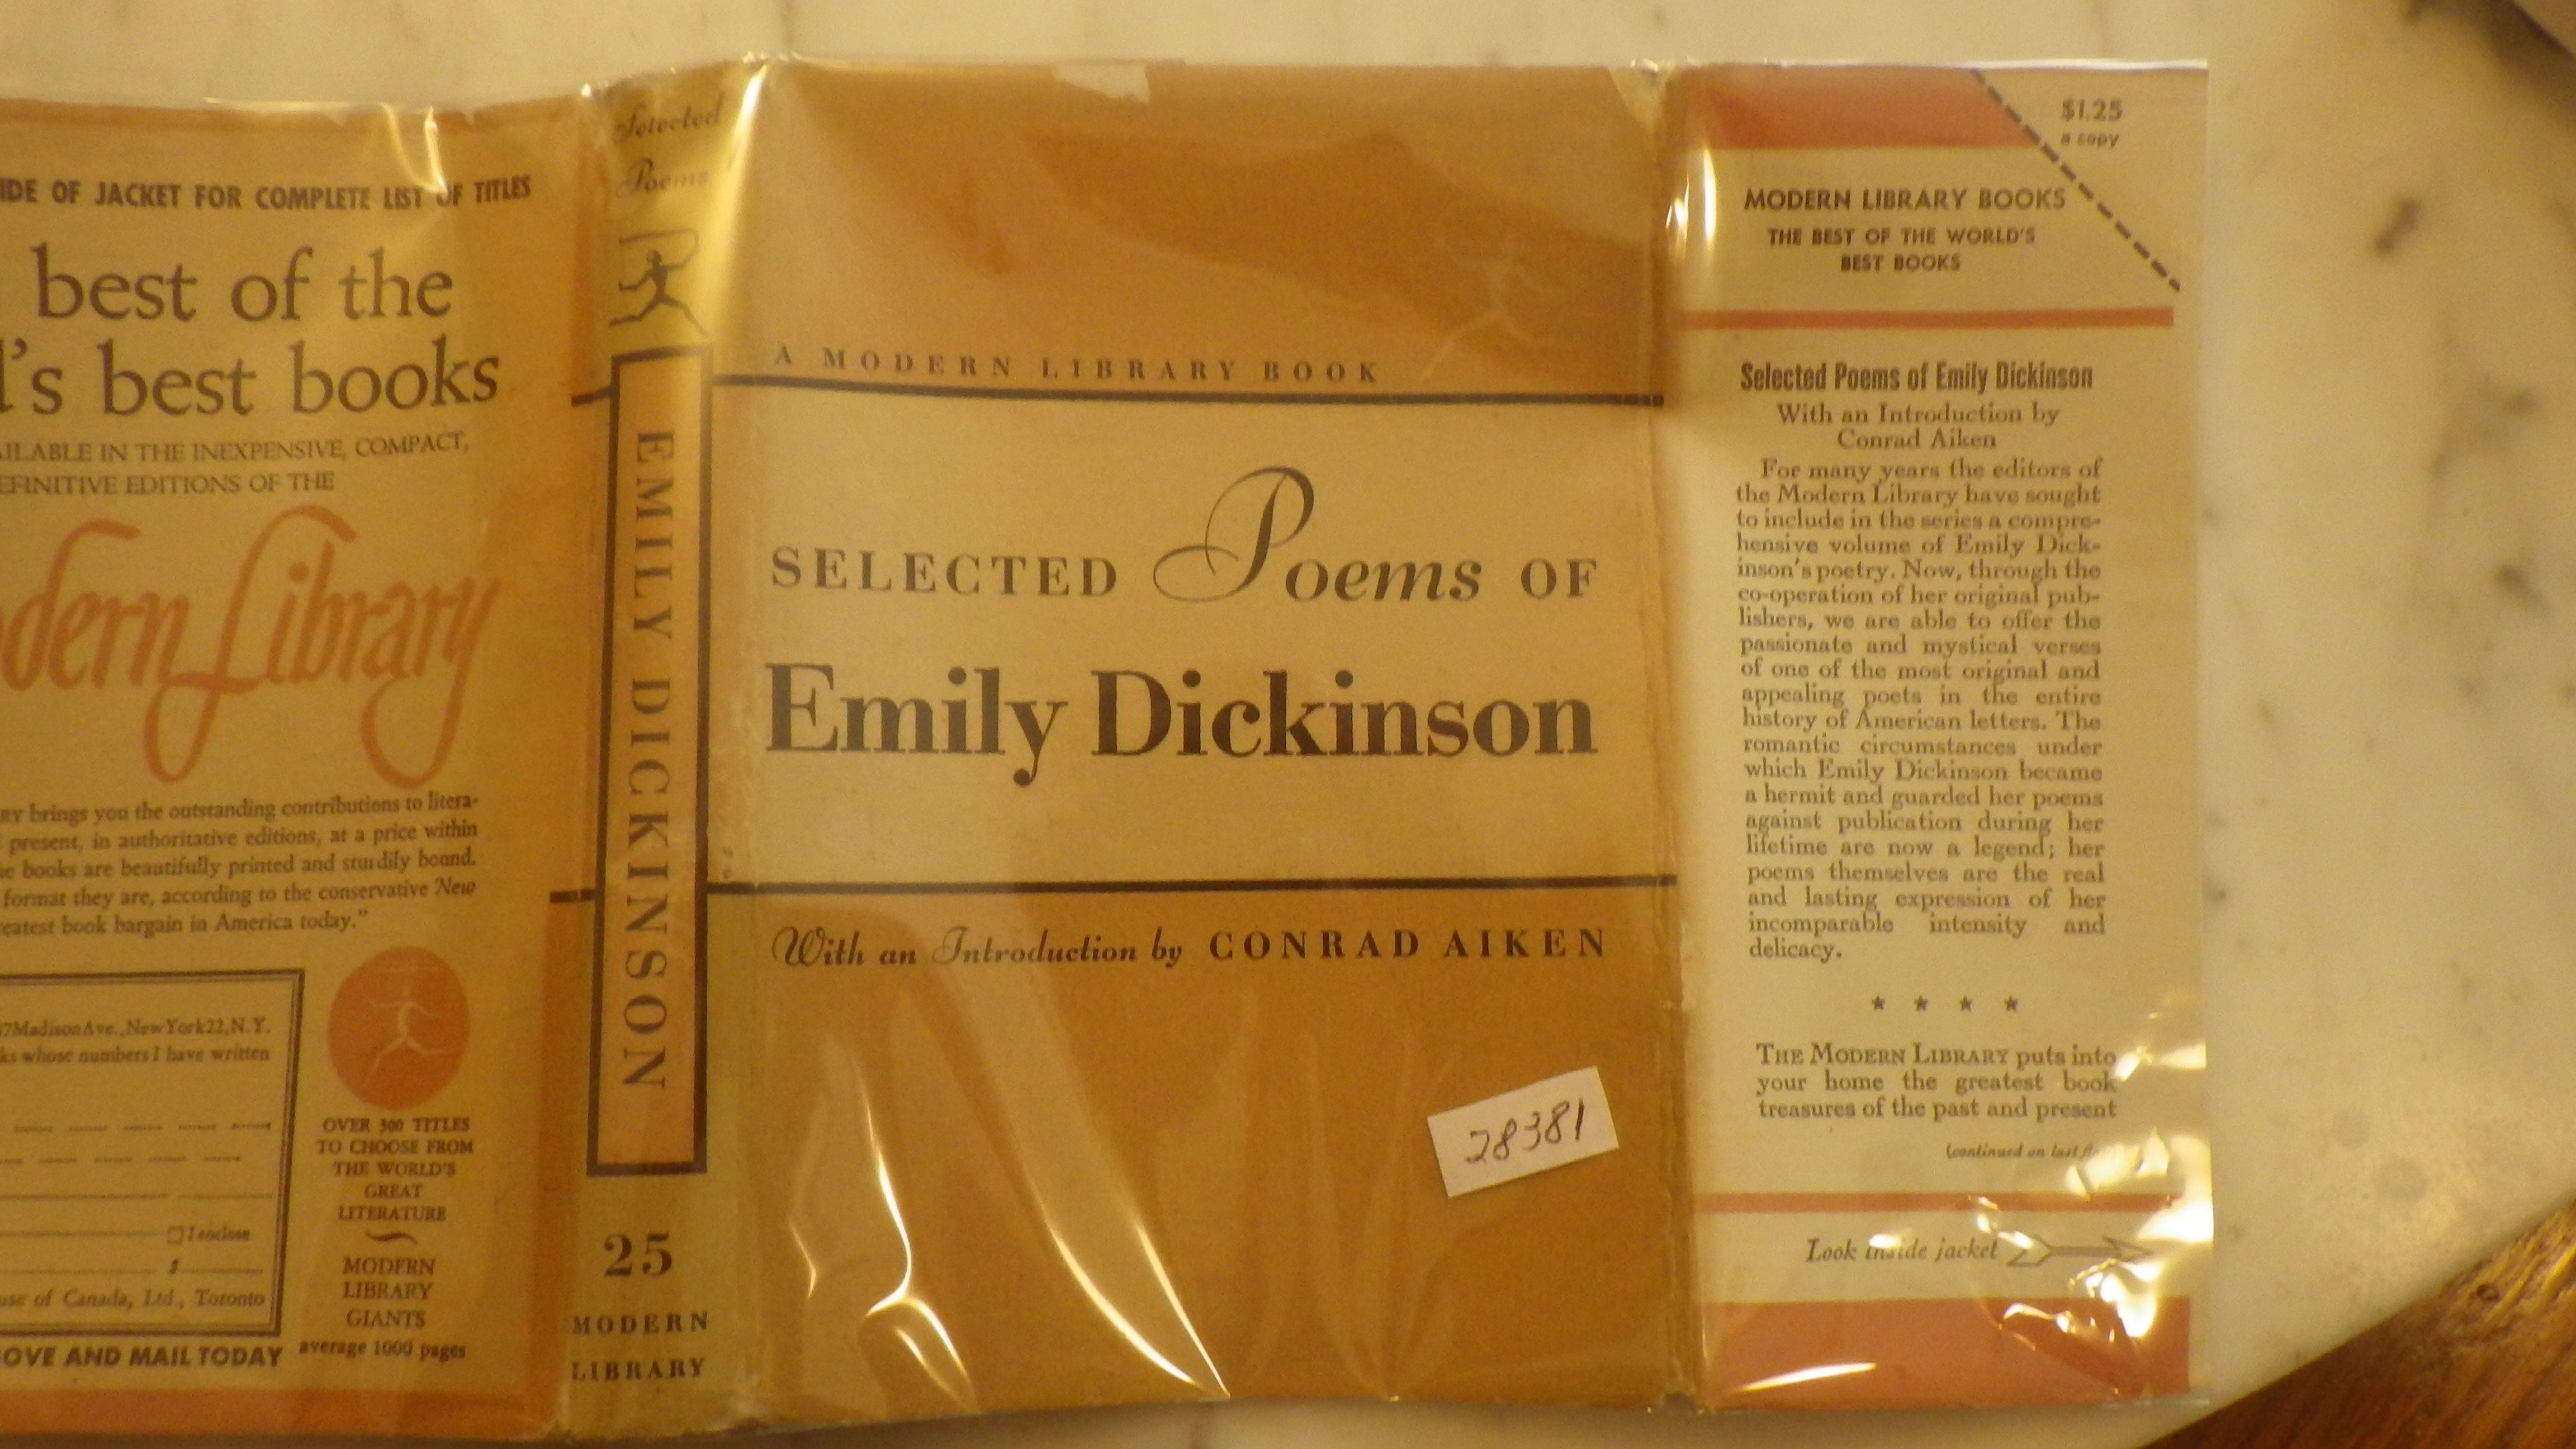 an introduction to the literature by emily dickinson View i'm_nobodywho_are_you[1] from english 125 at ashford university im nobody the poem: i'm nobody who are you by emily dickinson name eng125: introduction to literature (gsh1111h) prof.